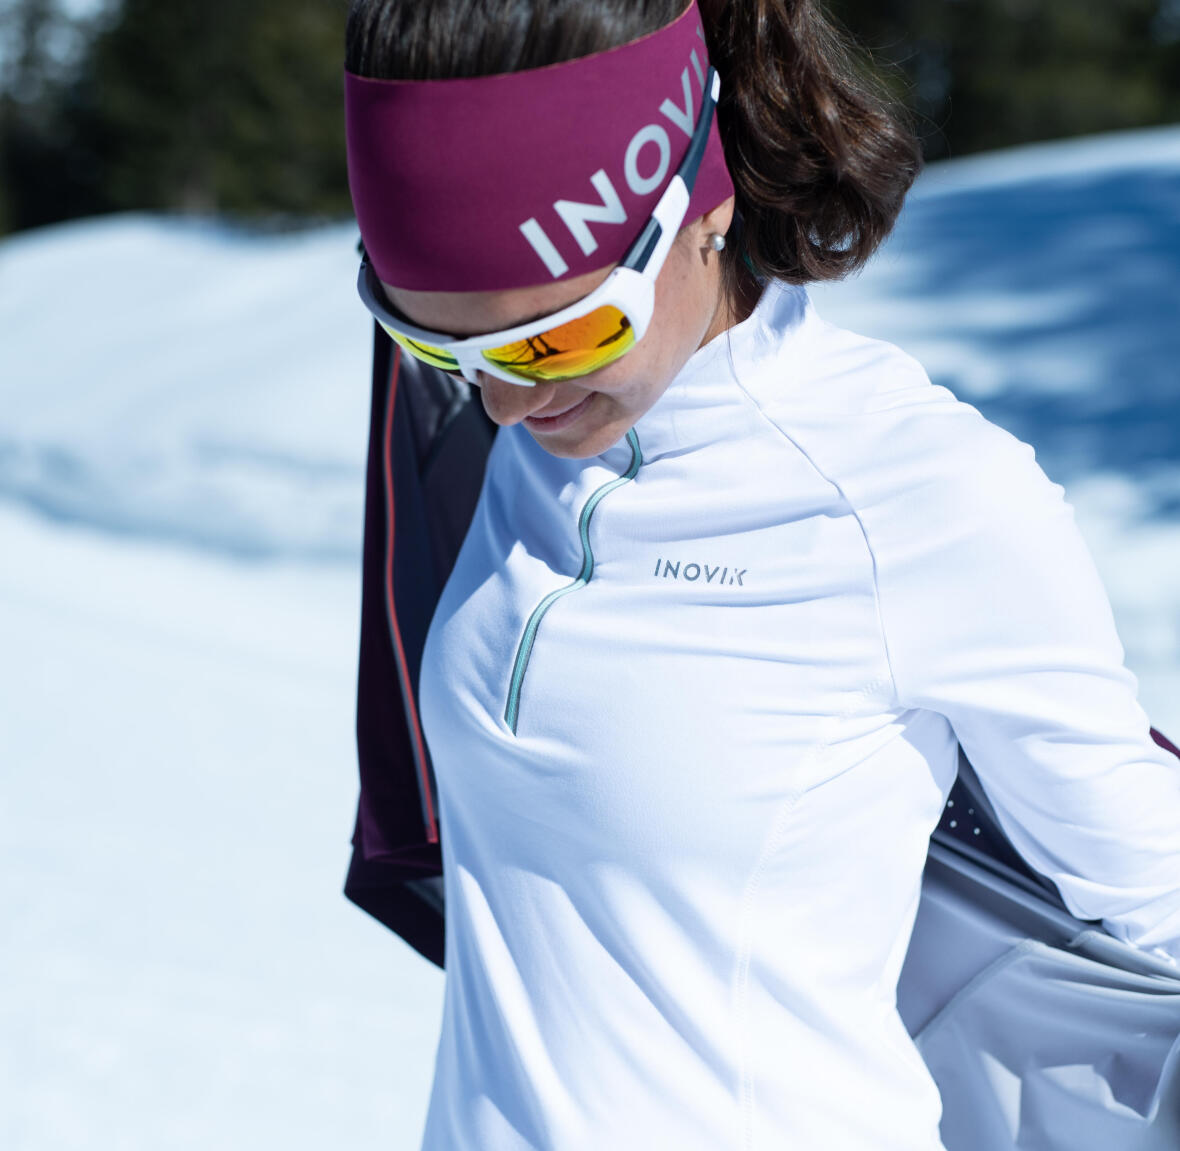 woman take off her cross-country skiing jacket